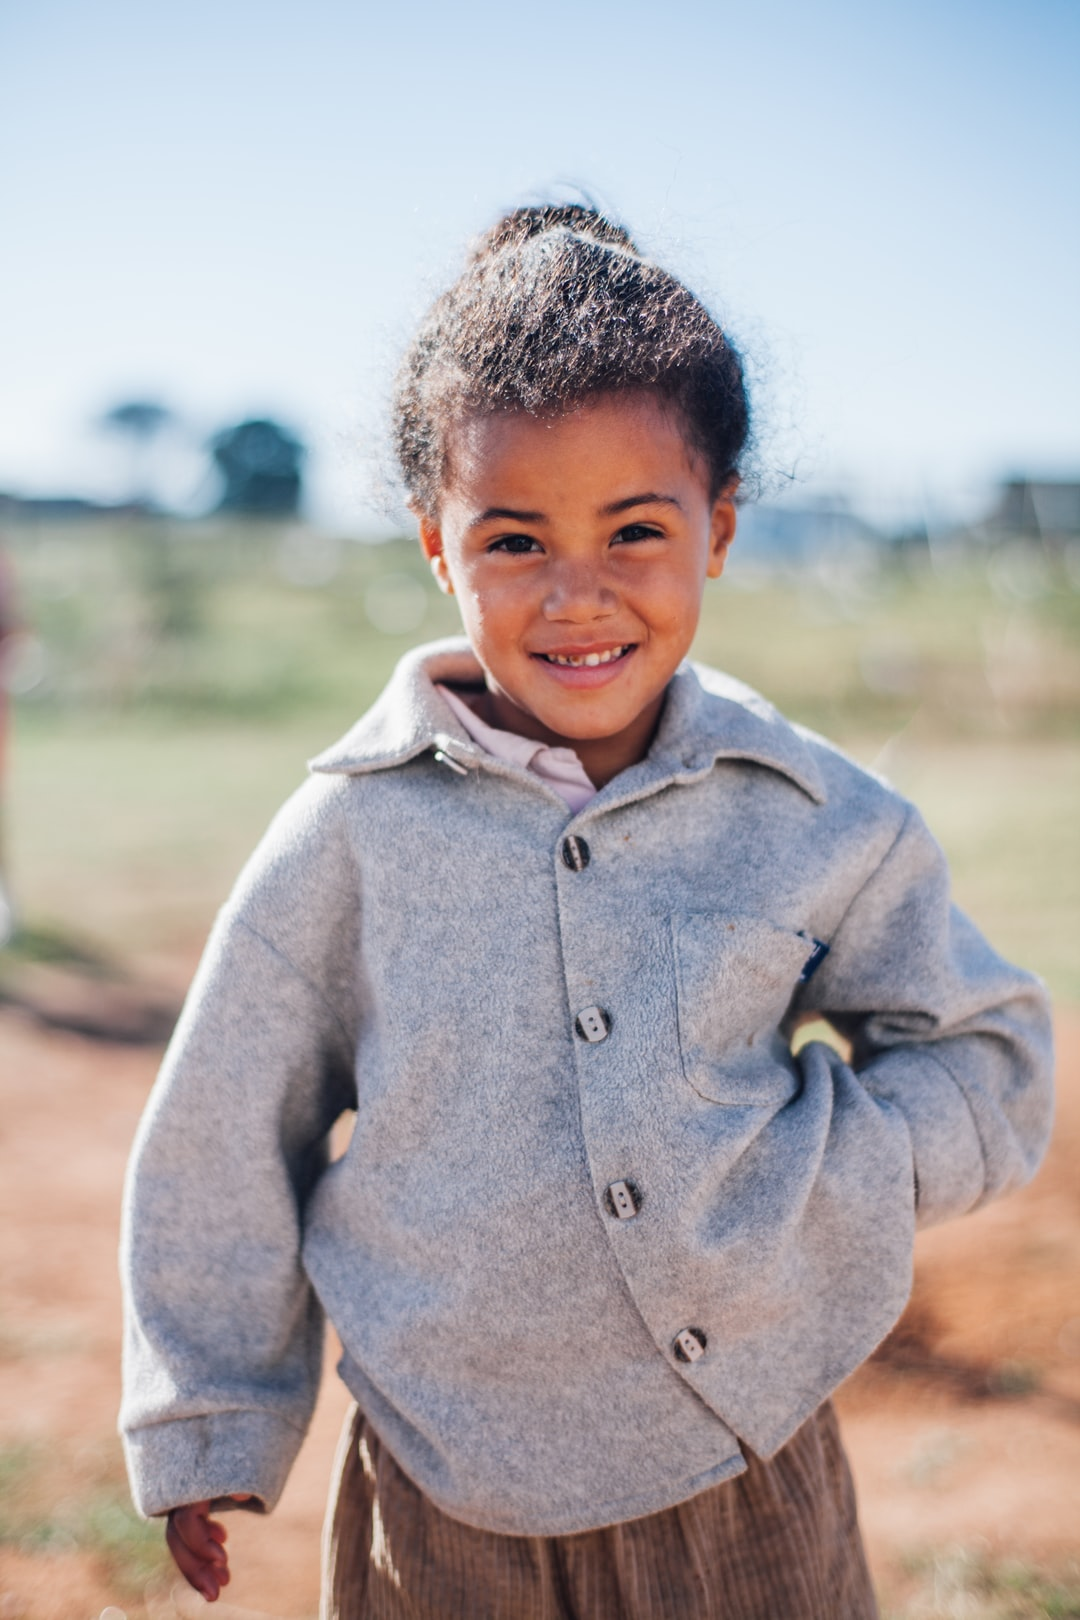 A shy little girl in Africa – she and her family had stood in line for hours for some food that a local church was providing. This was a moment when she stepped away from her mother, looking at me.